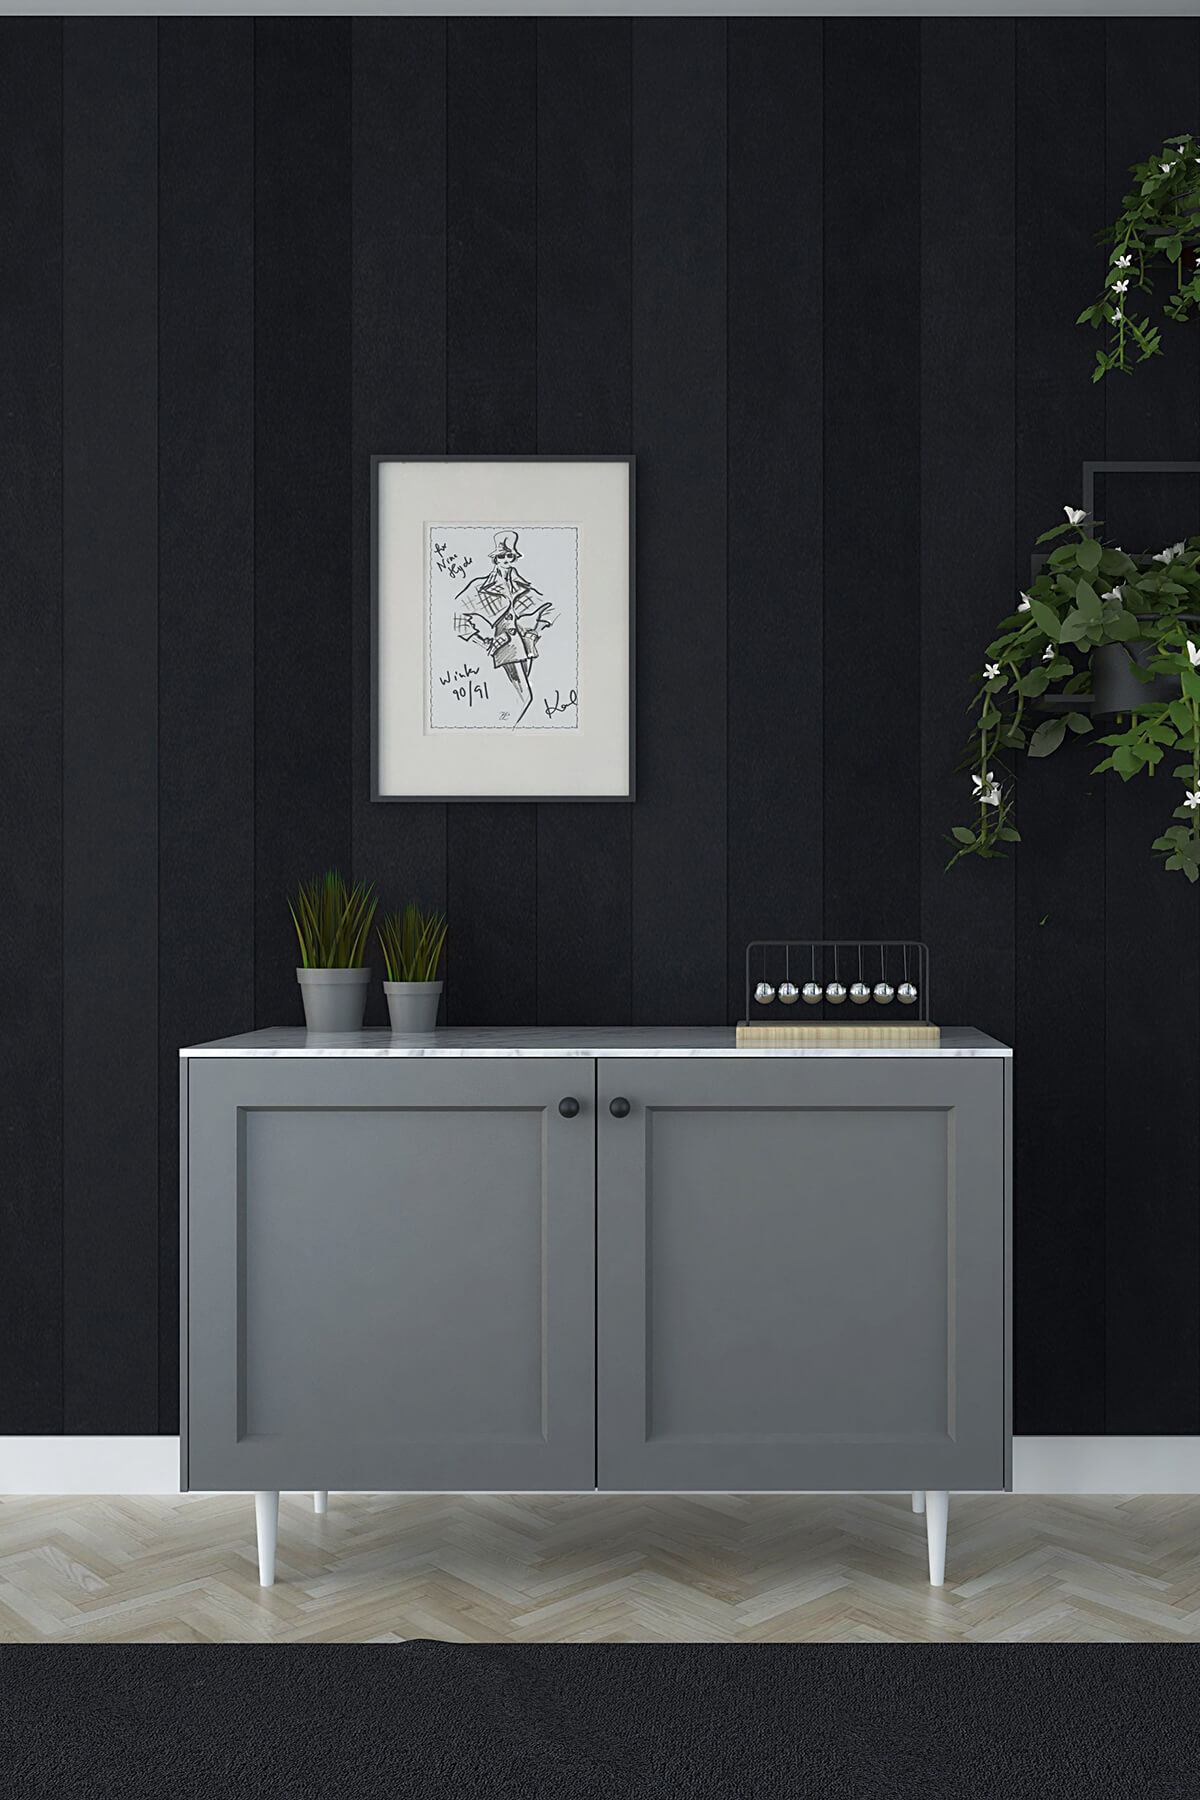 Ikea Metod Fronten Stylish Functional Ikea Home Furniture Metod Faktum Pax